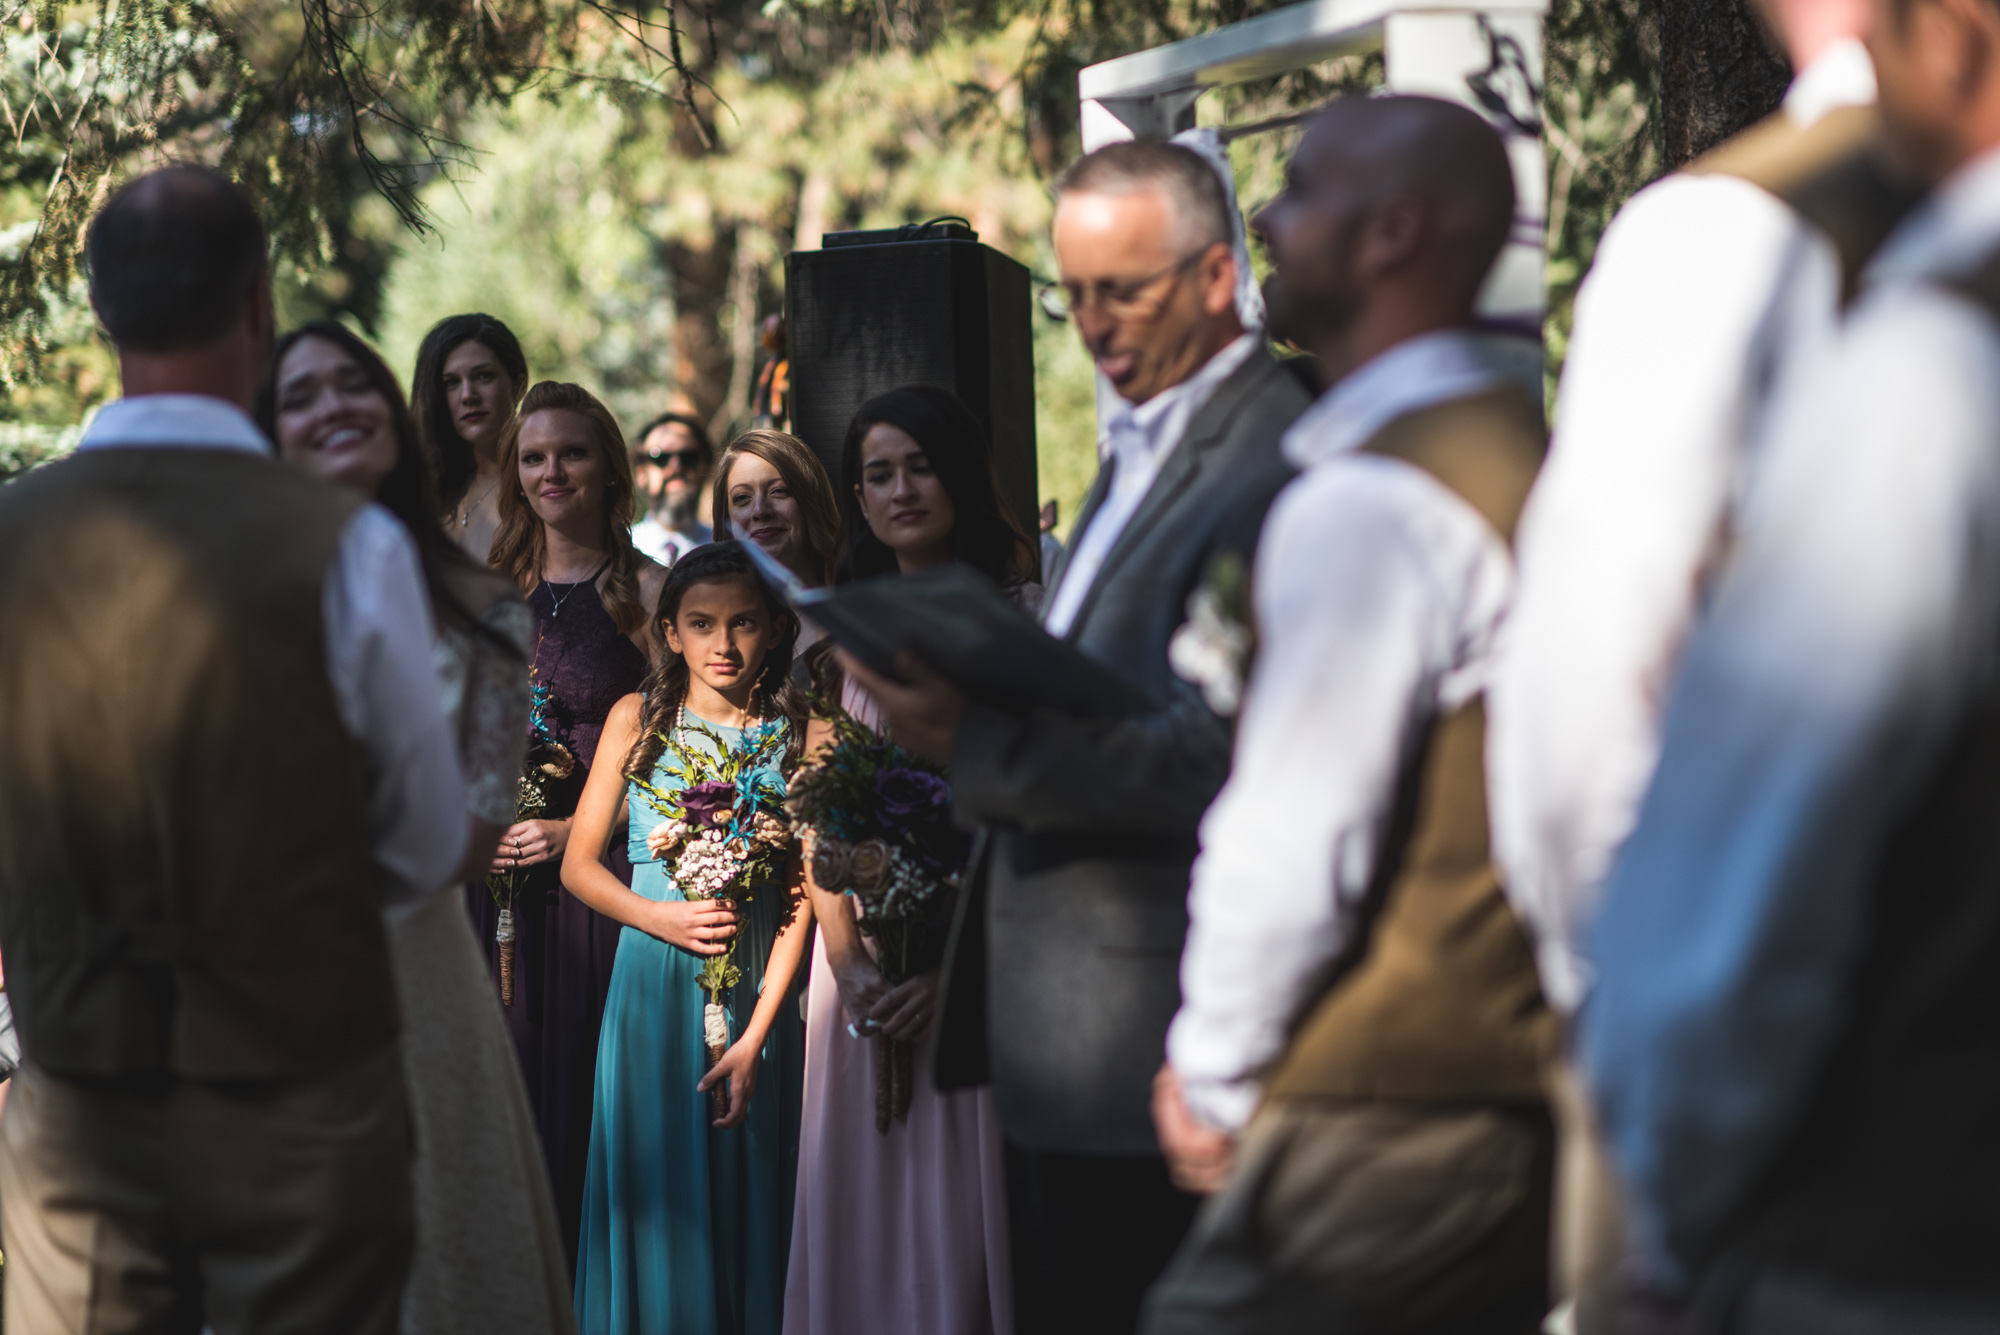 Bridesmaid during an outdoor wedding ceremony in a beautiful pocket of light